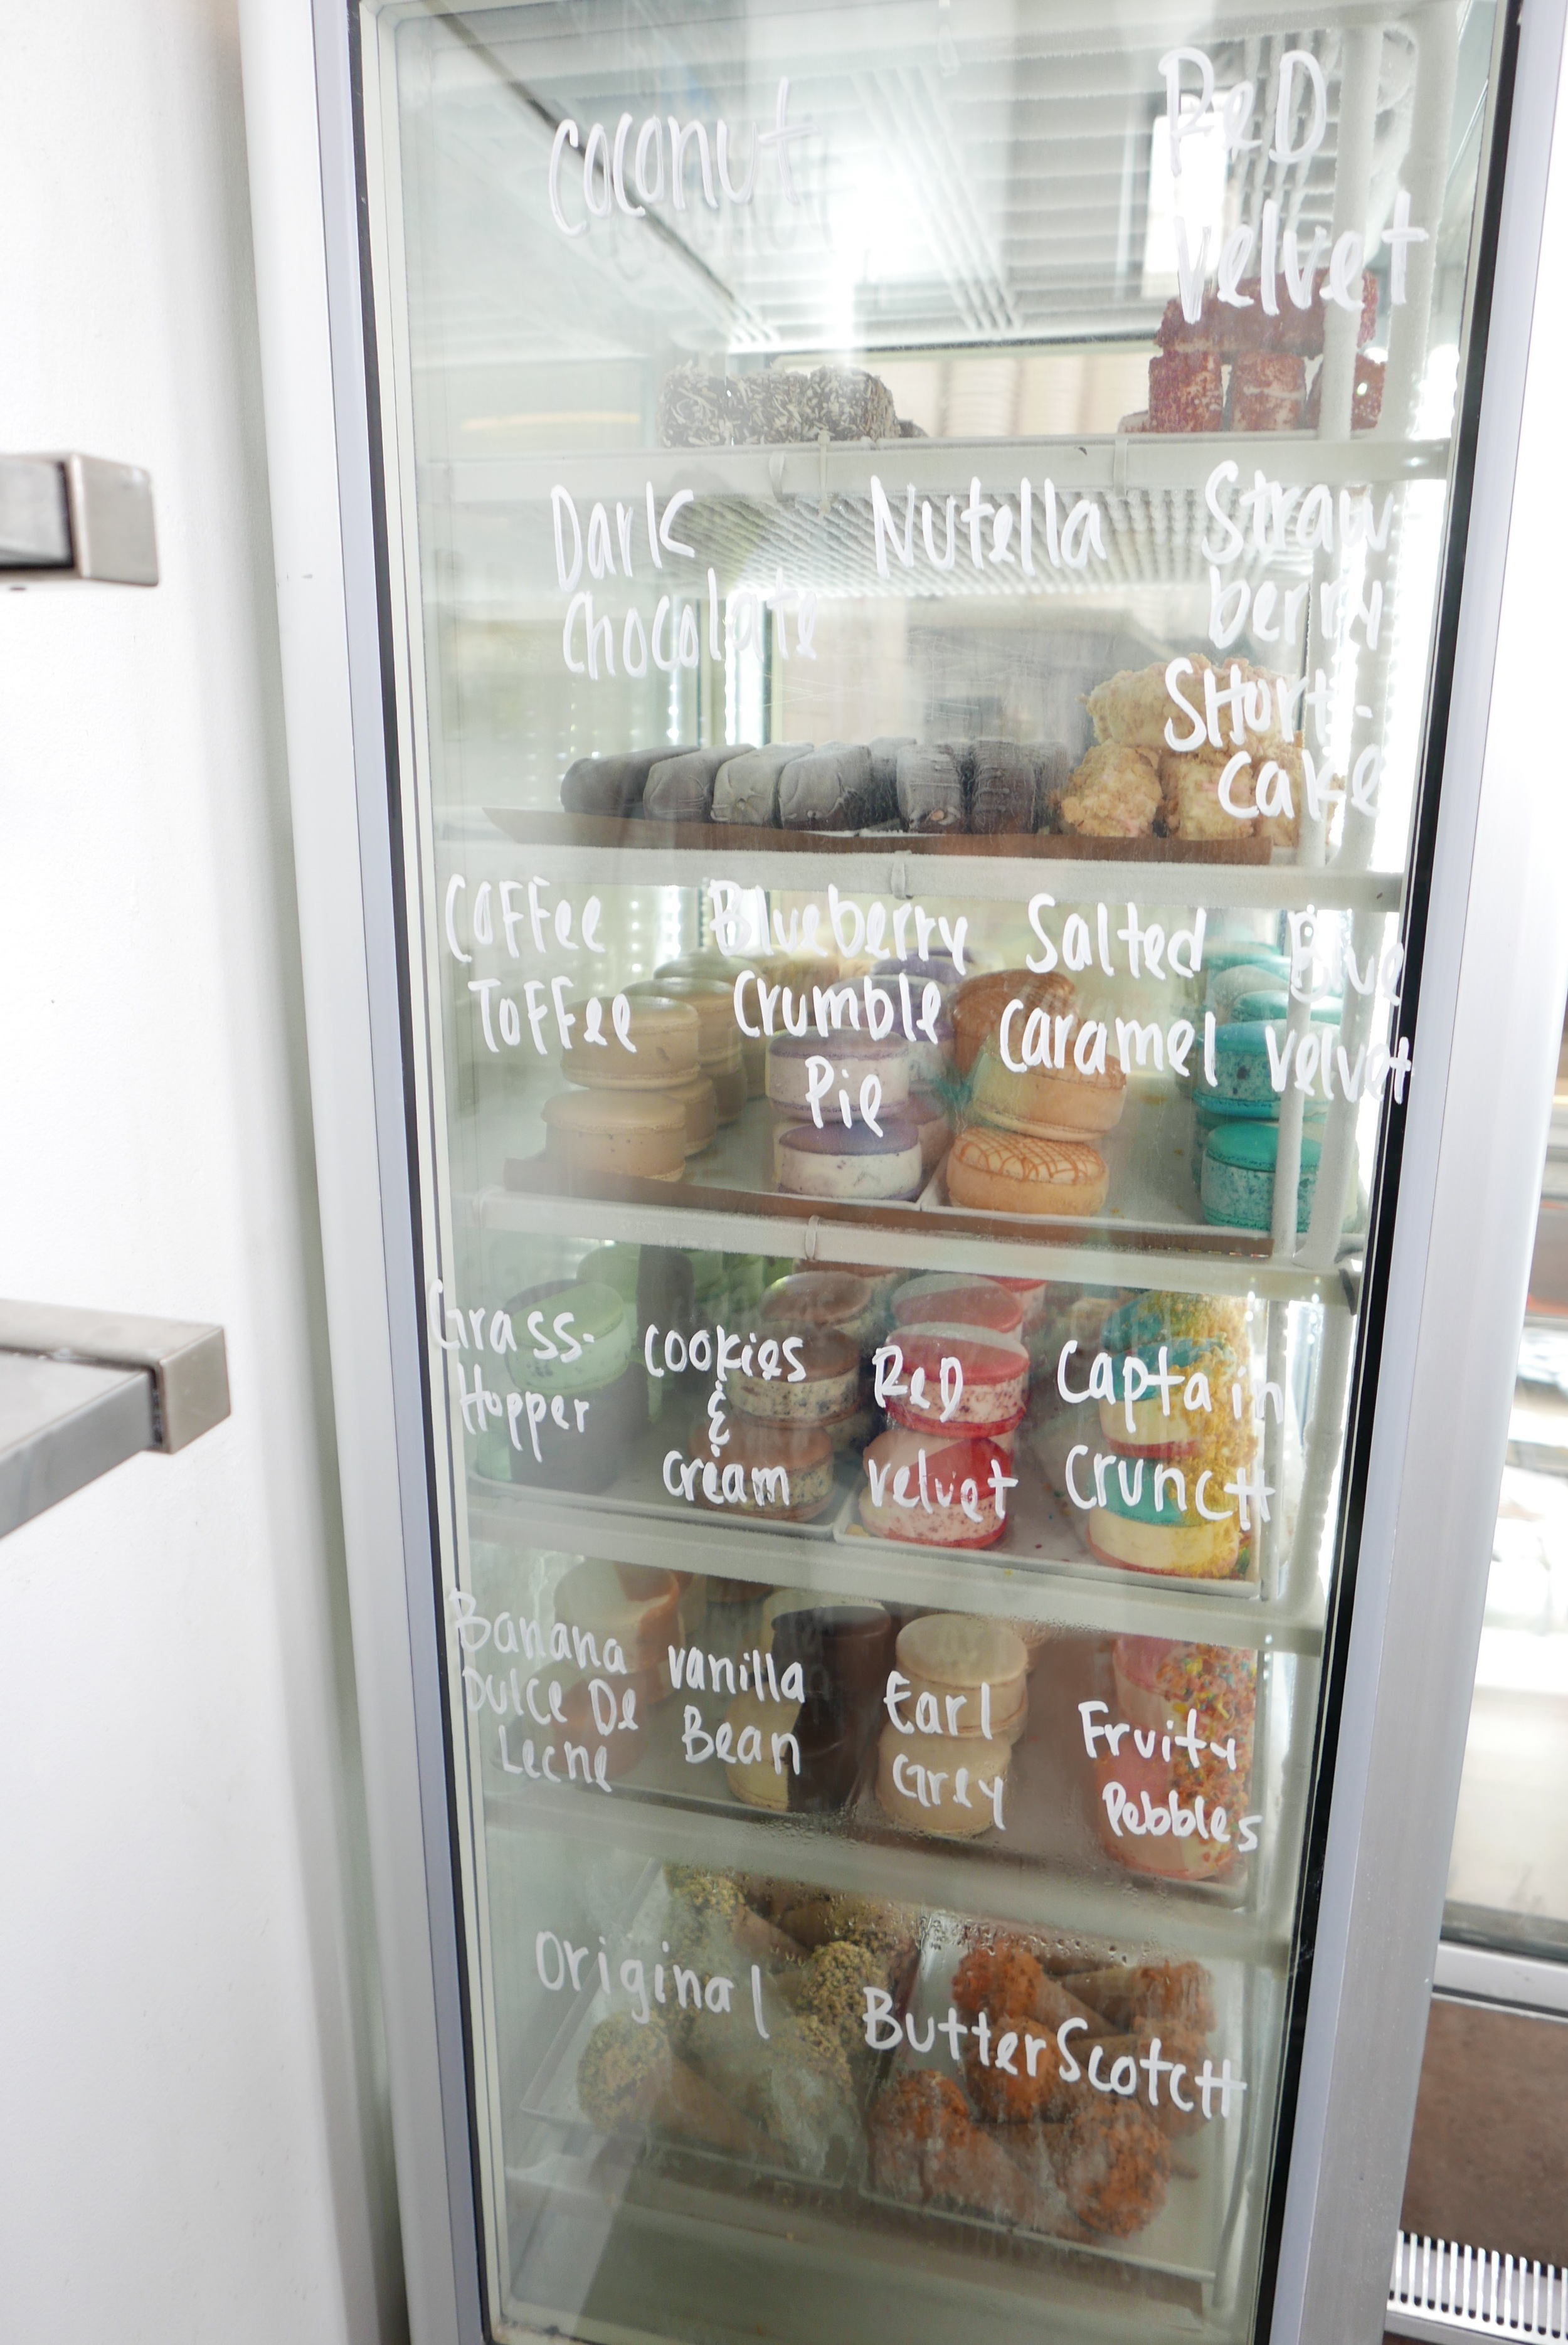 Here are all the flavors of the macaroon ice cream sandwiches. Can you guess which one I picked?